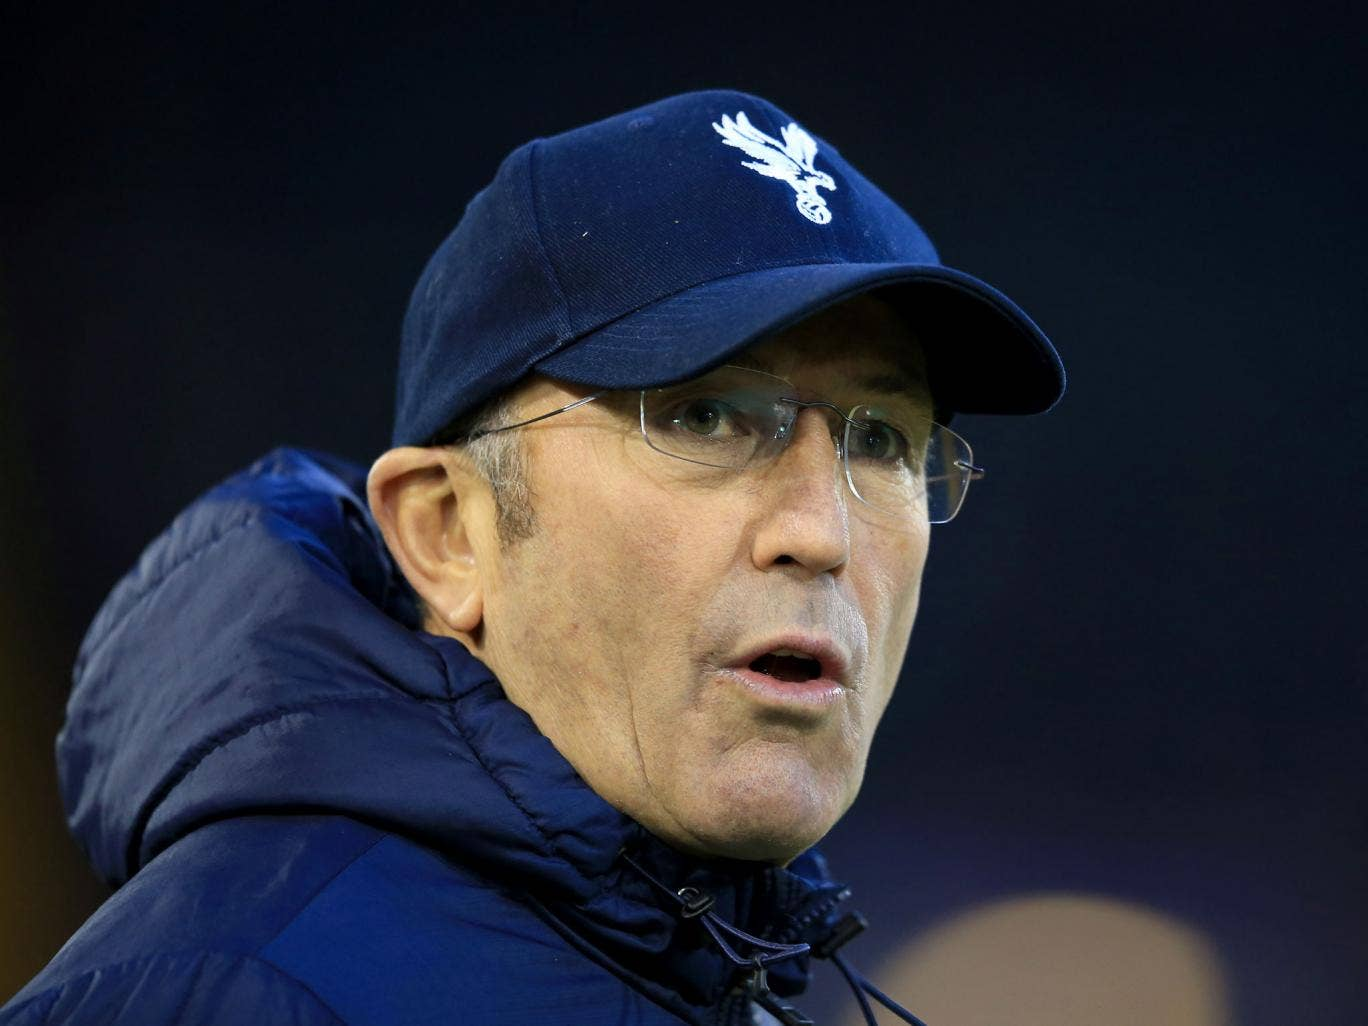 Tony Pulis has been disappointed at the failure to reinforce a team that sits bottom of the table